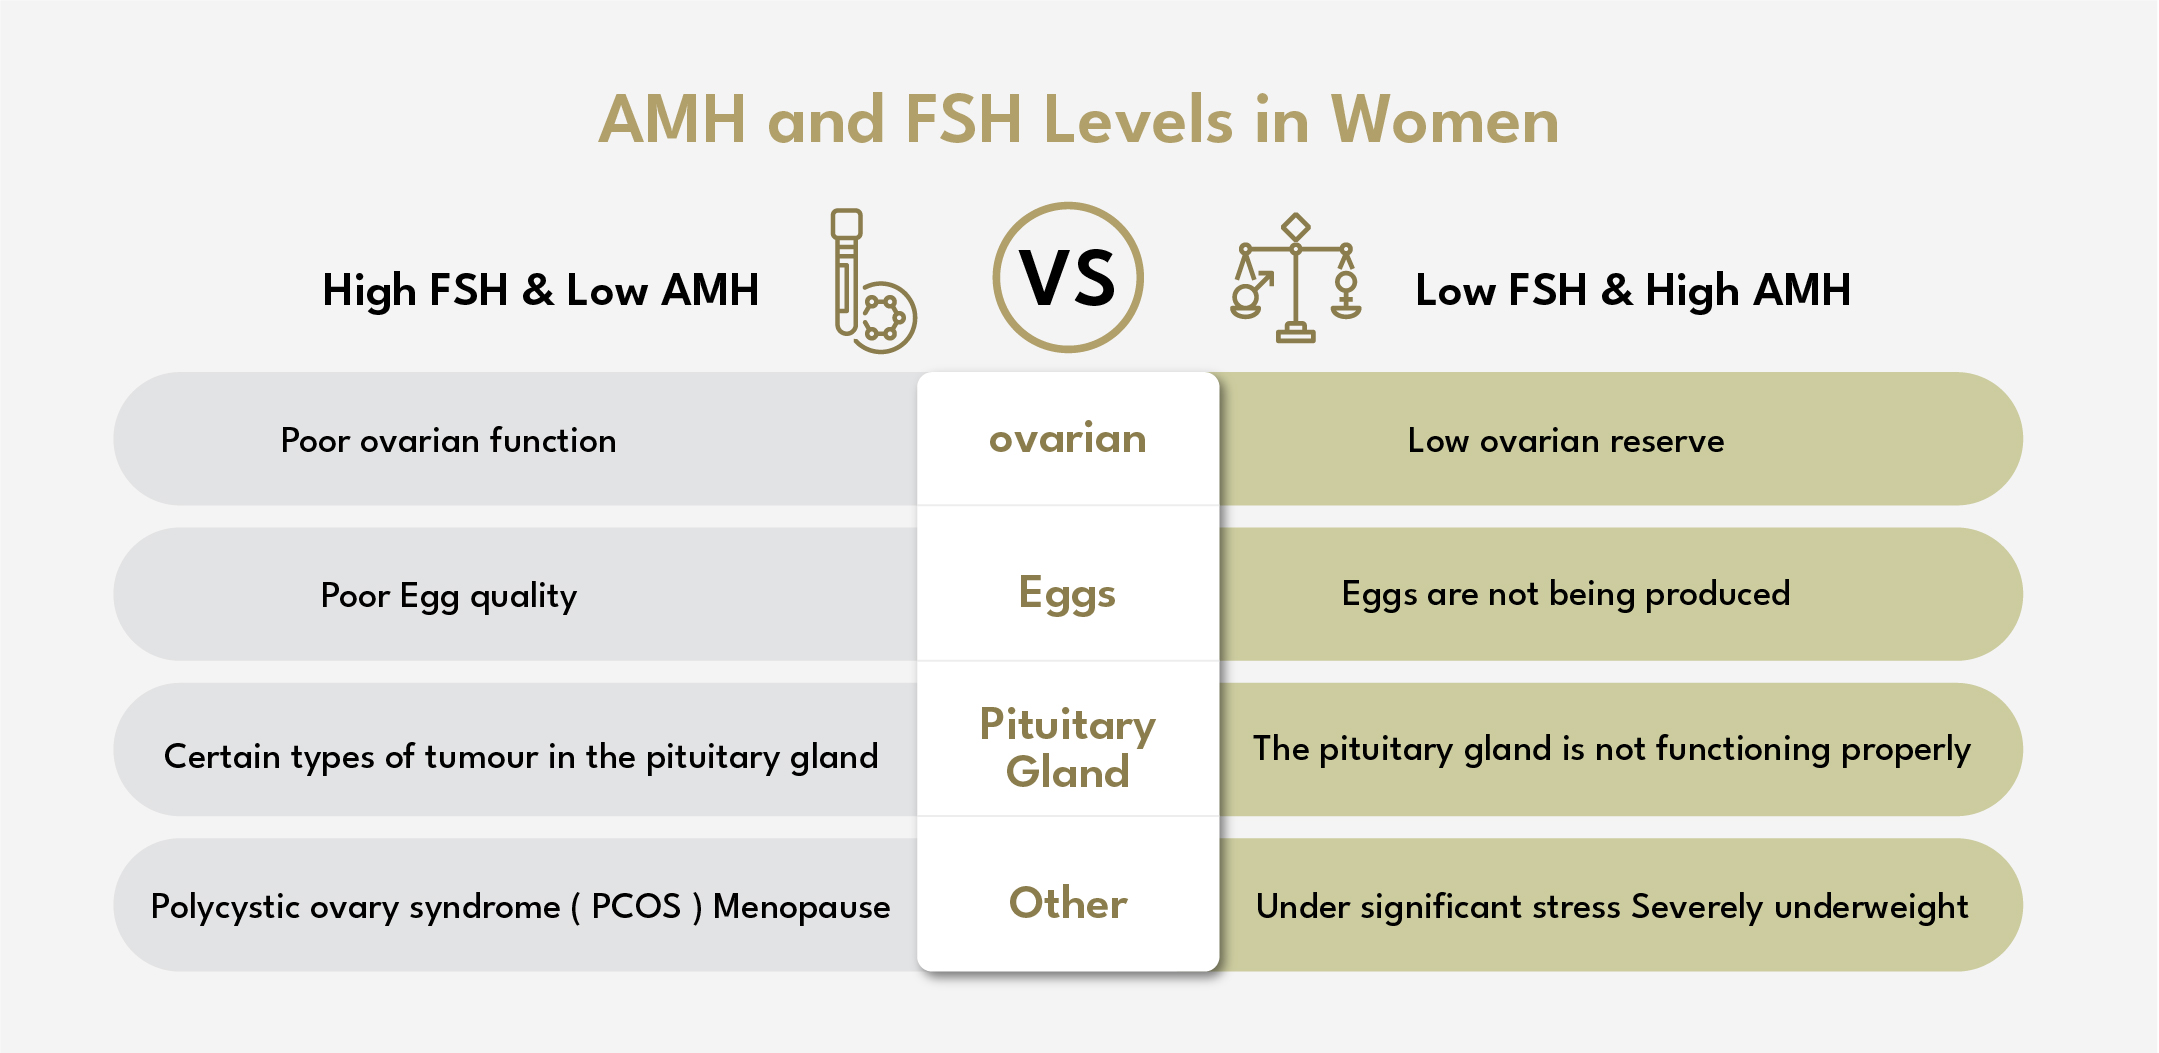 AMH AND FSH LEVELS IN WOMEN